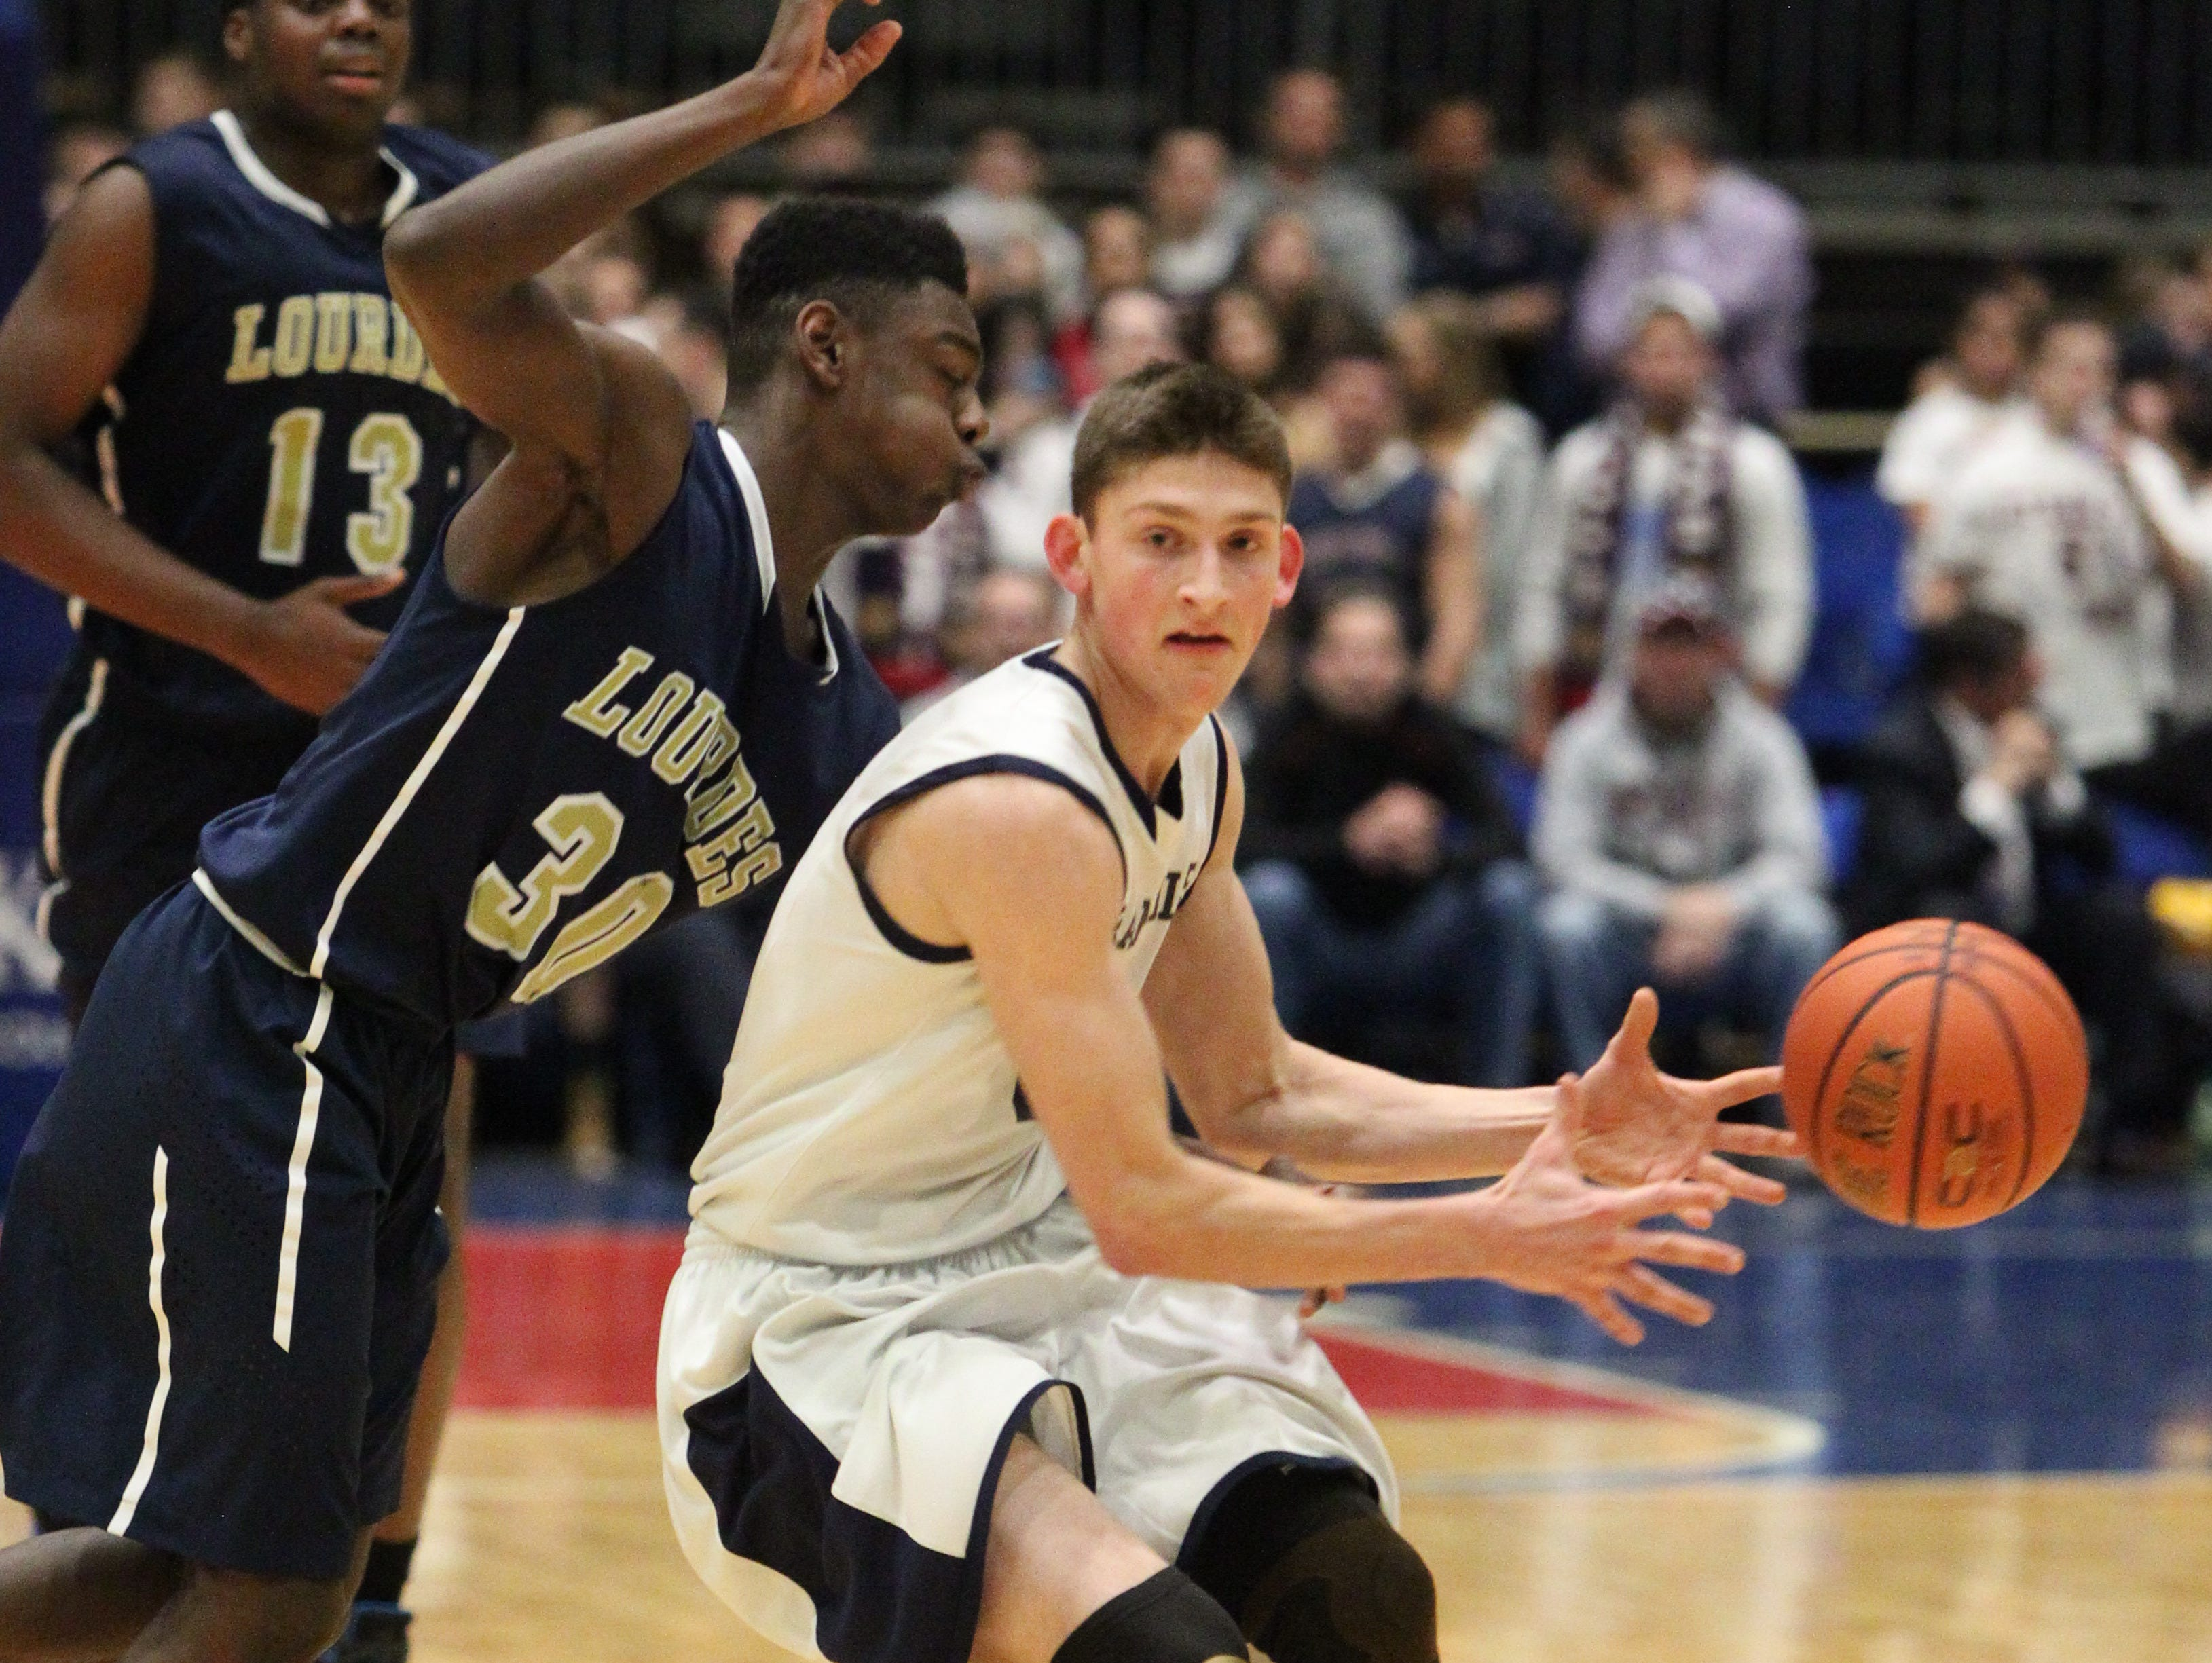 Byram Hills' Jared Friedberg is pressured by Lourdes' Kevin Townes during their Section 1 Class A semifinal at the Westchester County Center Feb. 22, 2016.